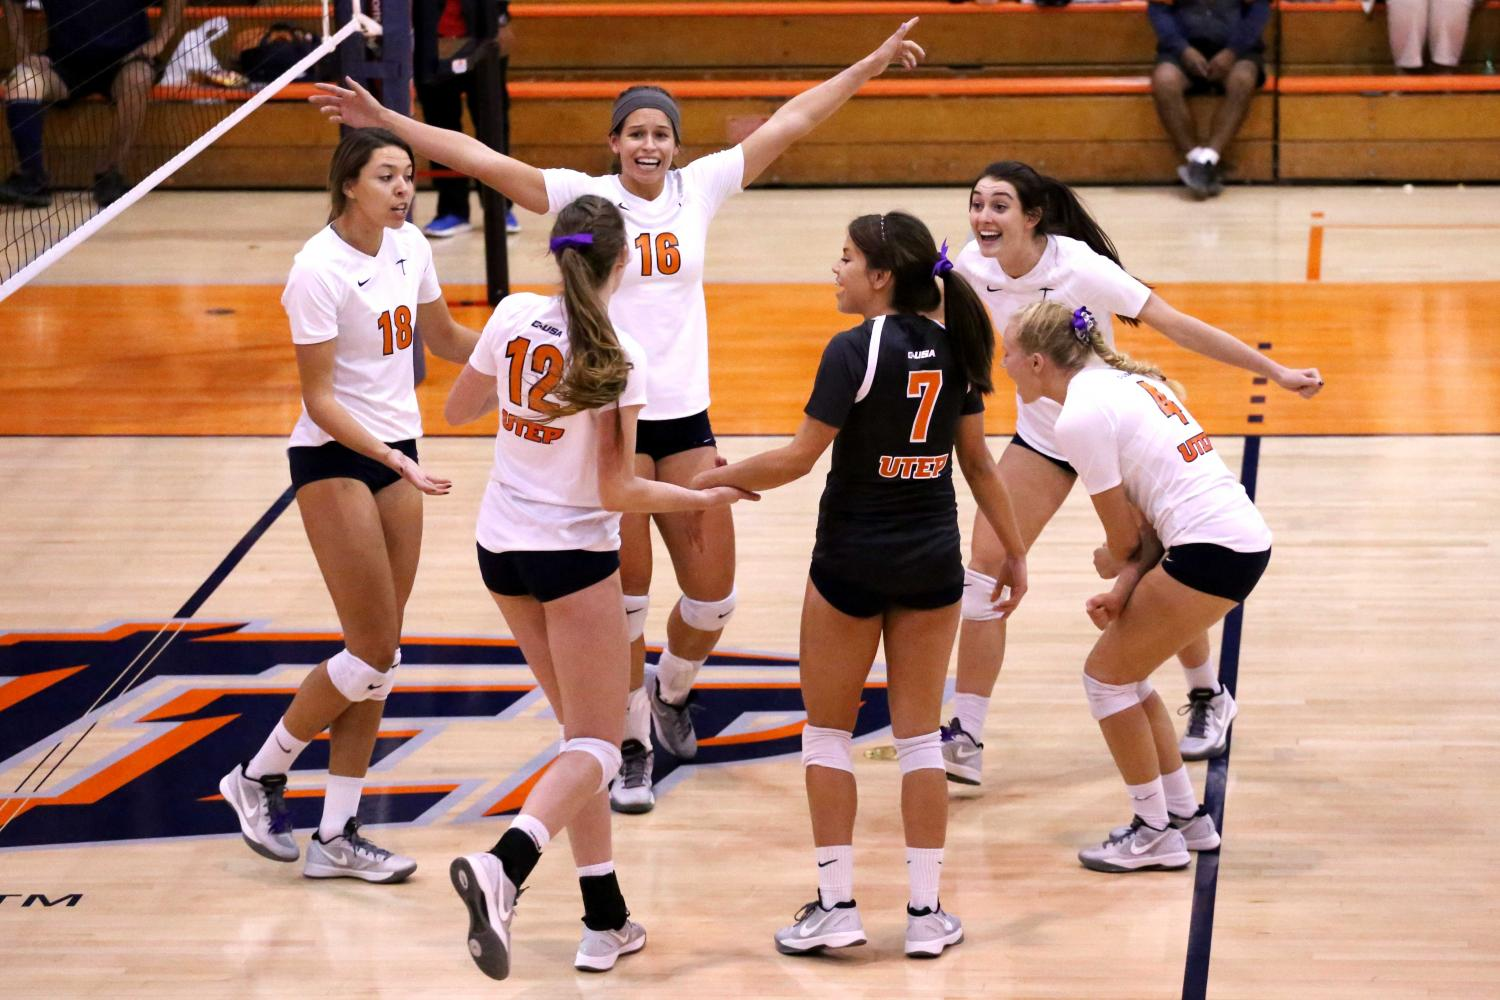 The+UTEP+Volleyball+team+will+play+at+home+for+the+first+time+in+2017+against+Texas+Tech.